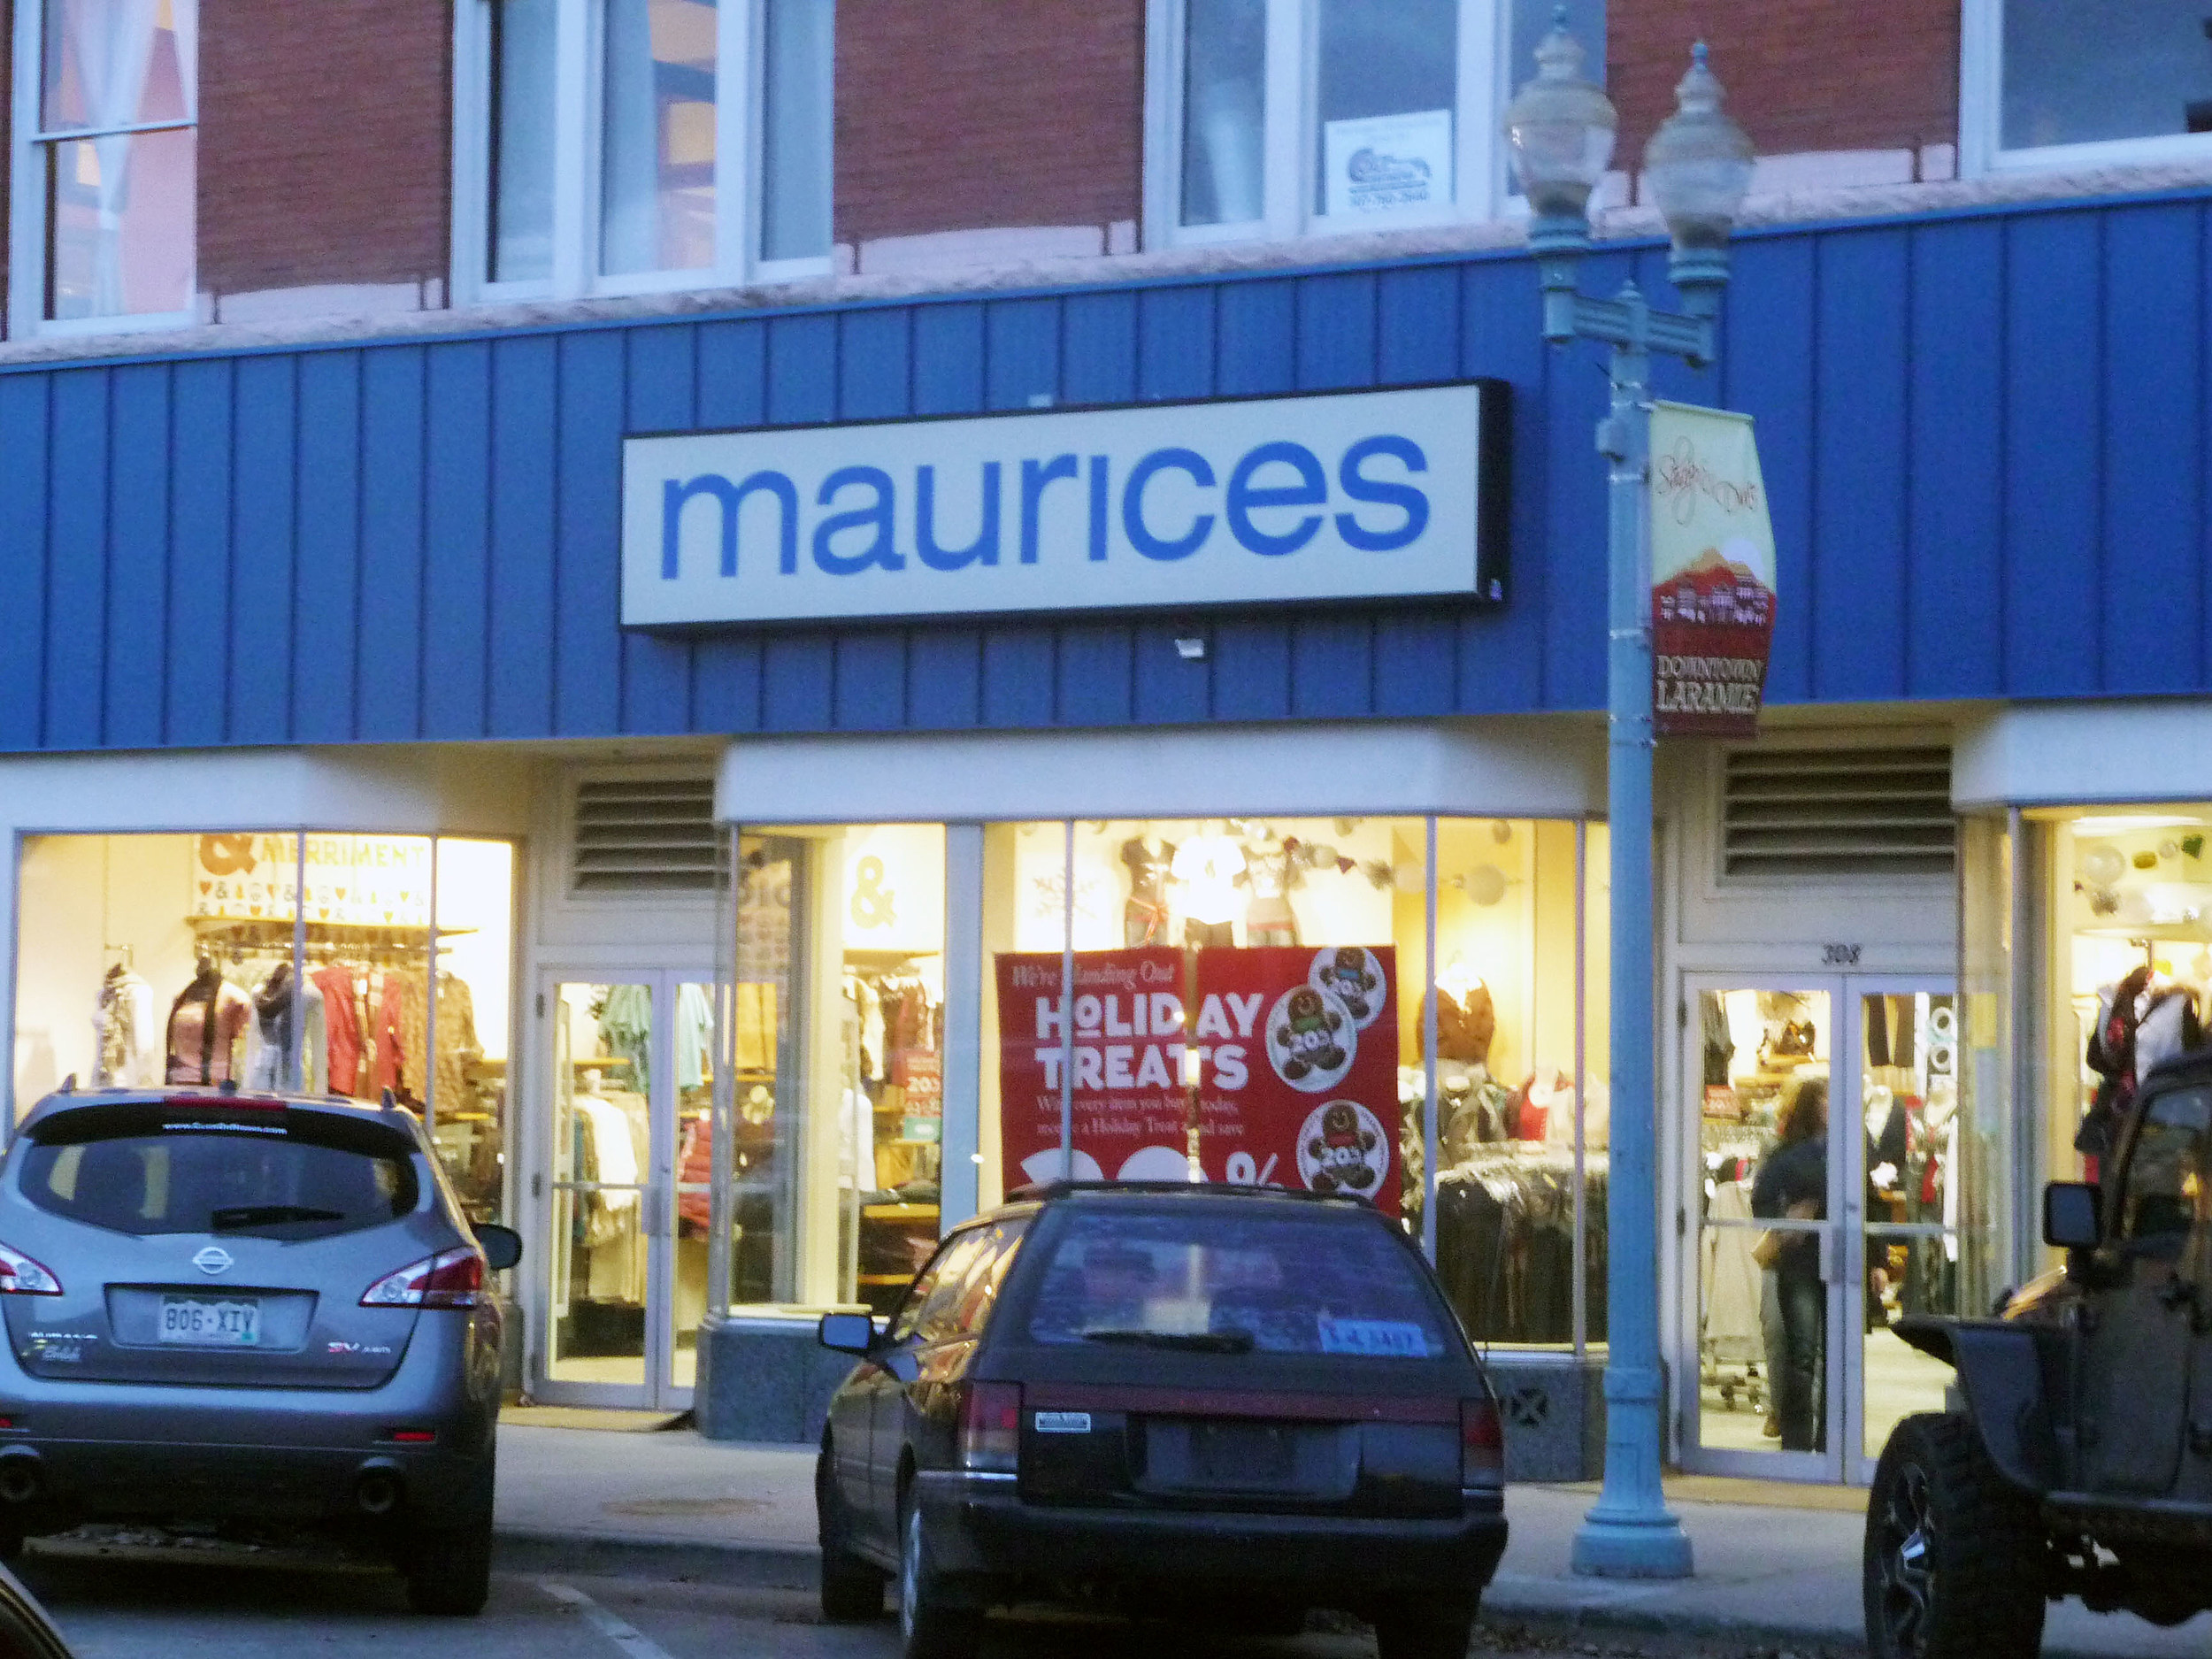 image regarding Maurices Printable Coupons identify Retail outlet maurices / Latest Wholesale